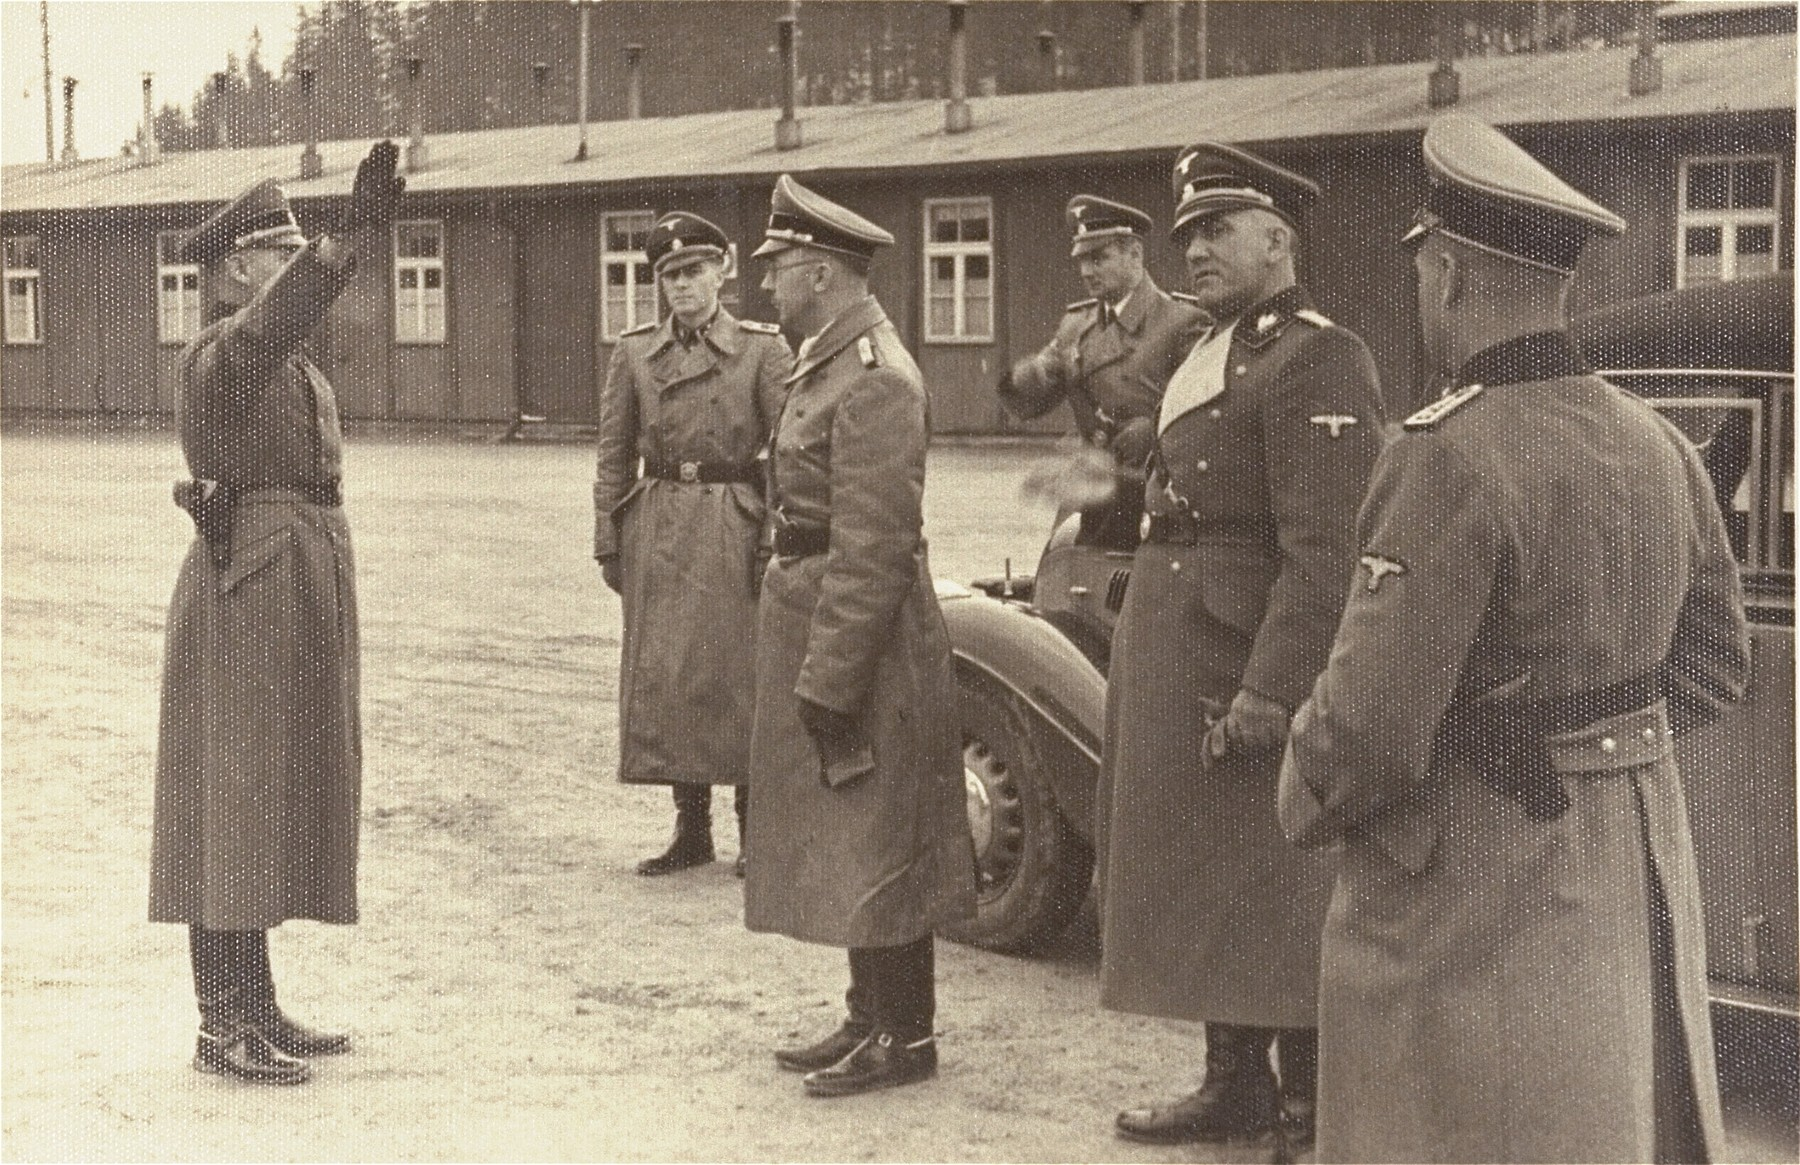 Reichsfuehrer SS Heinrich Himmler is saluted upon his arrival in Dachau for an official visit by Anton Mussert, leader of the Dutch Nazi movement.  [Man saluting has also been identified as SS Hauptsturmfuehrer Alex Piorkowski and Camp Commandant Max Koegel.]  Among those pictured is Rudolf Hoess (second from the left) [has also been identified as Joachim Peiper], [Karl Wolff] (fourth from left), and Oswald Pohl (second from the right).